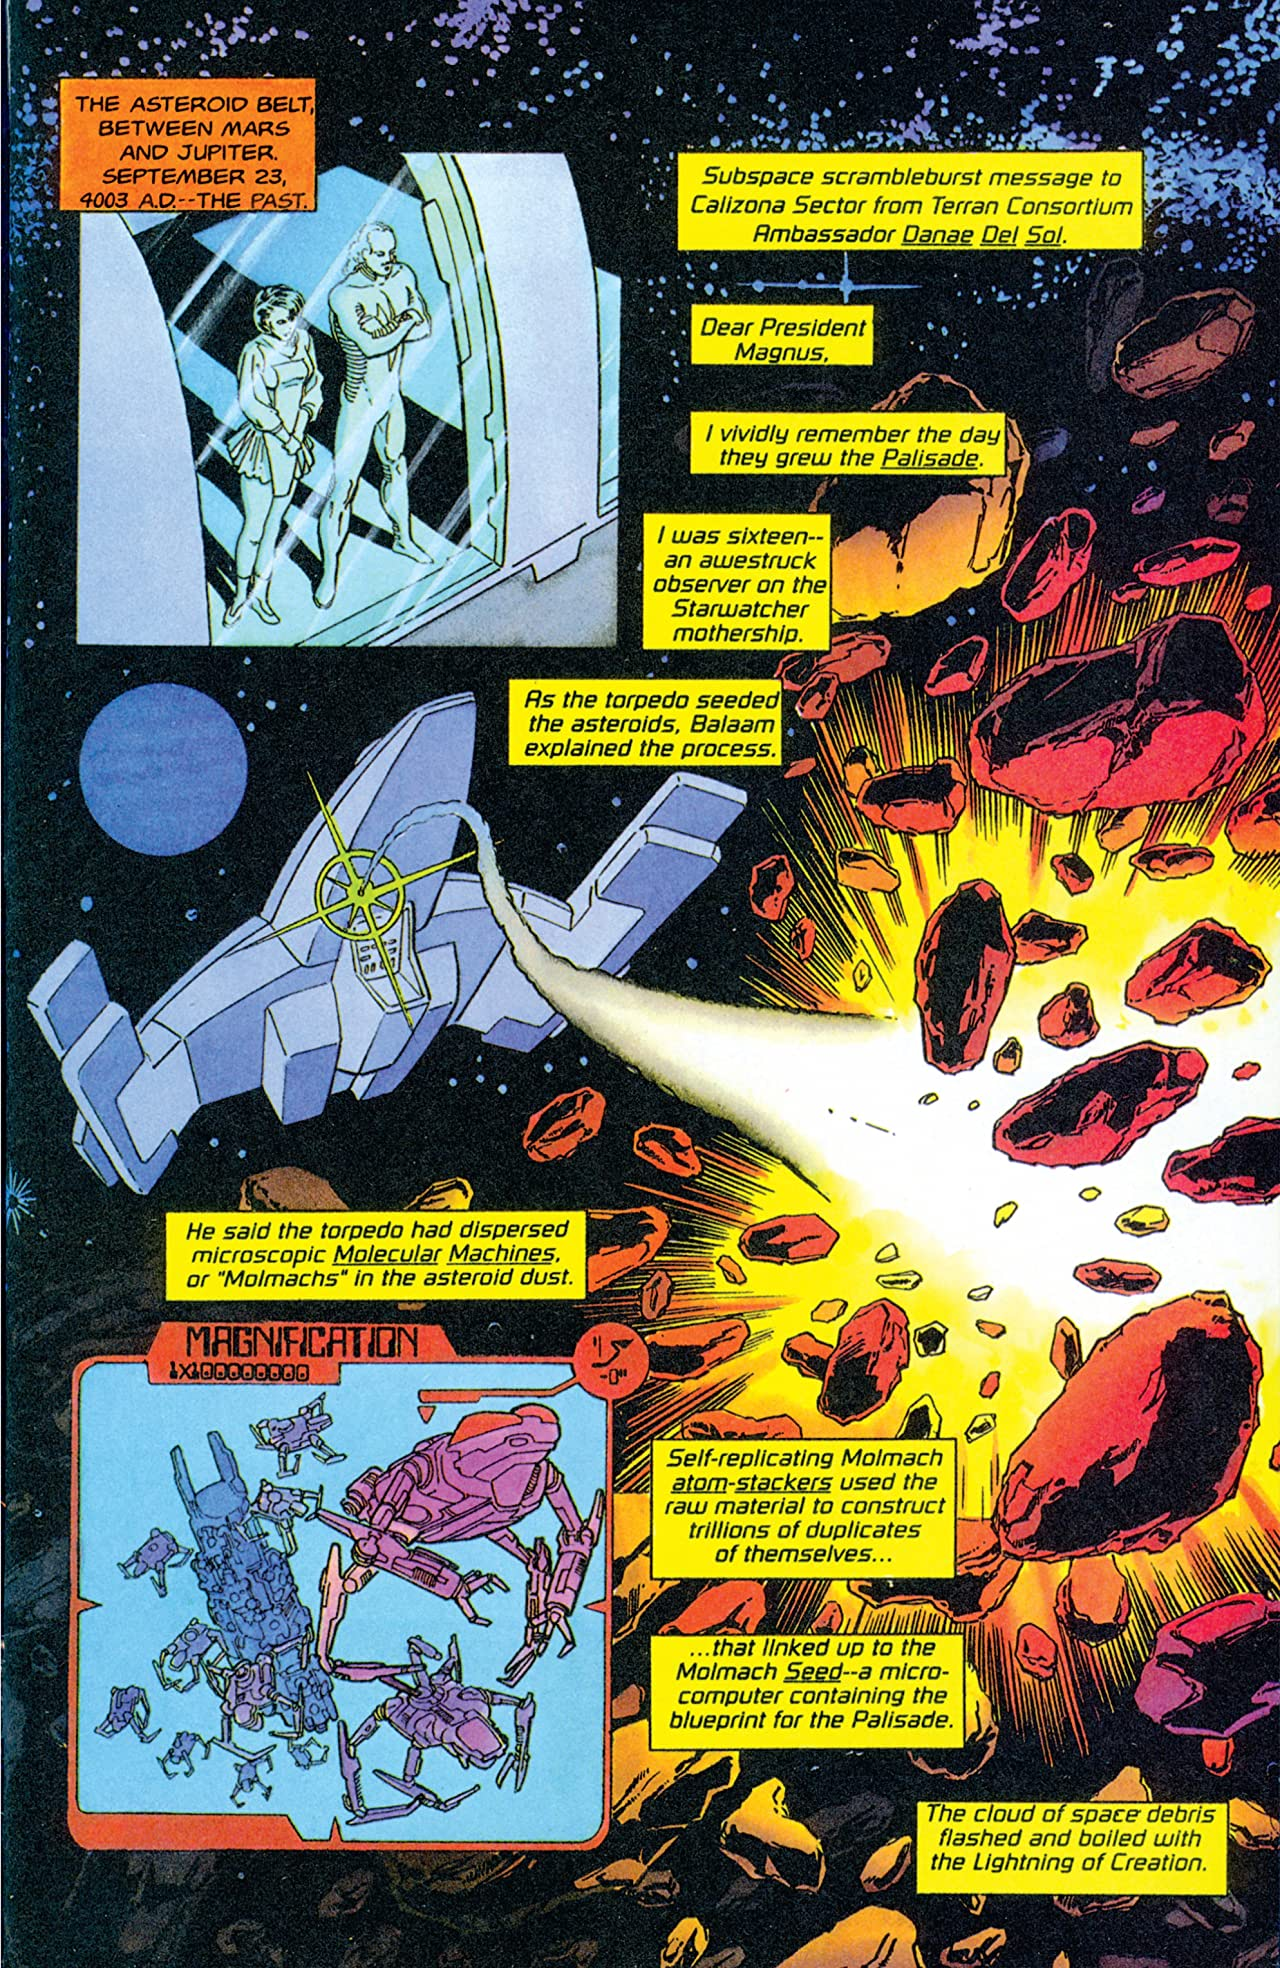 Psi-Lords (1994) #1